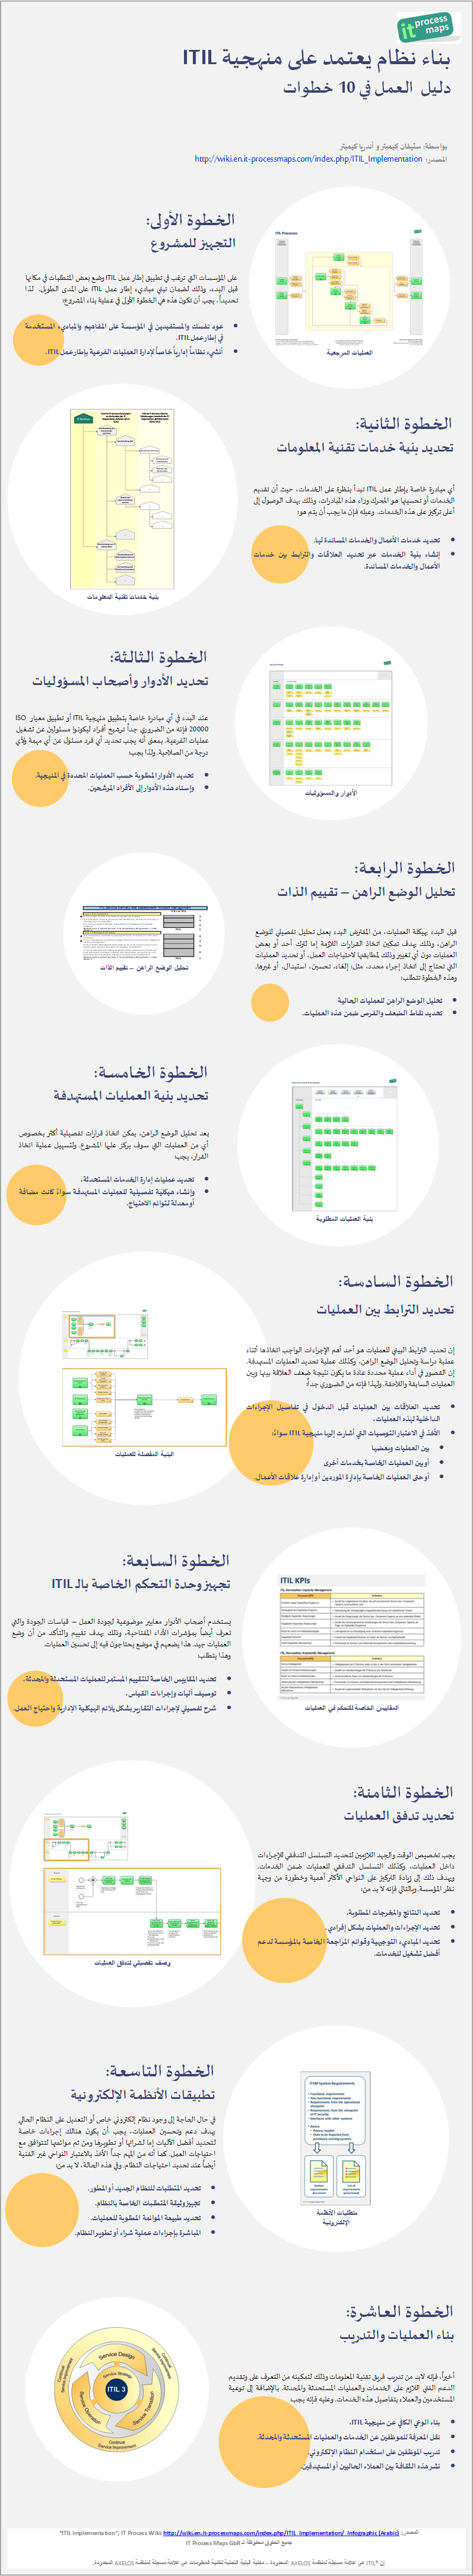 itil implementation infographic arabic it process wiki